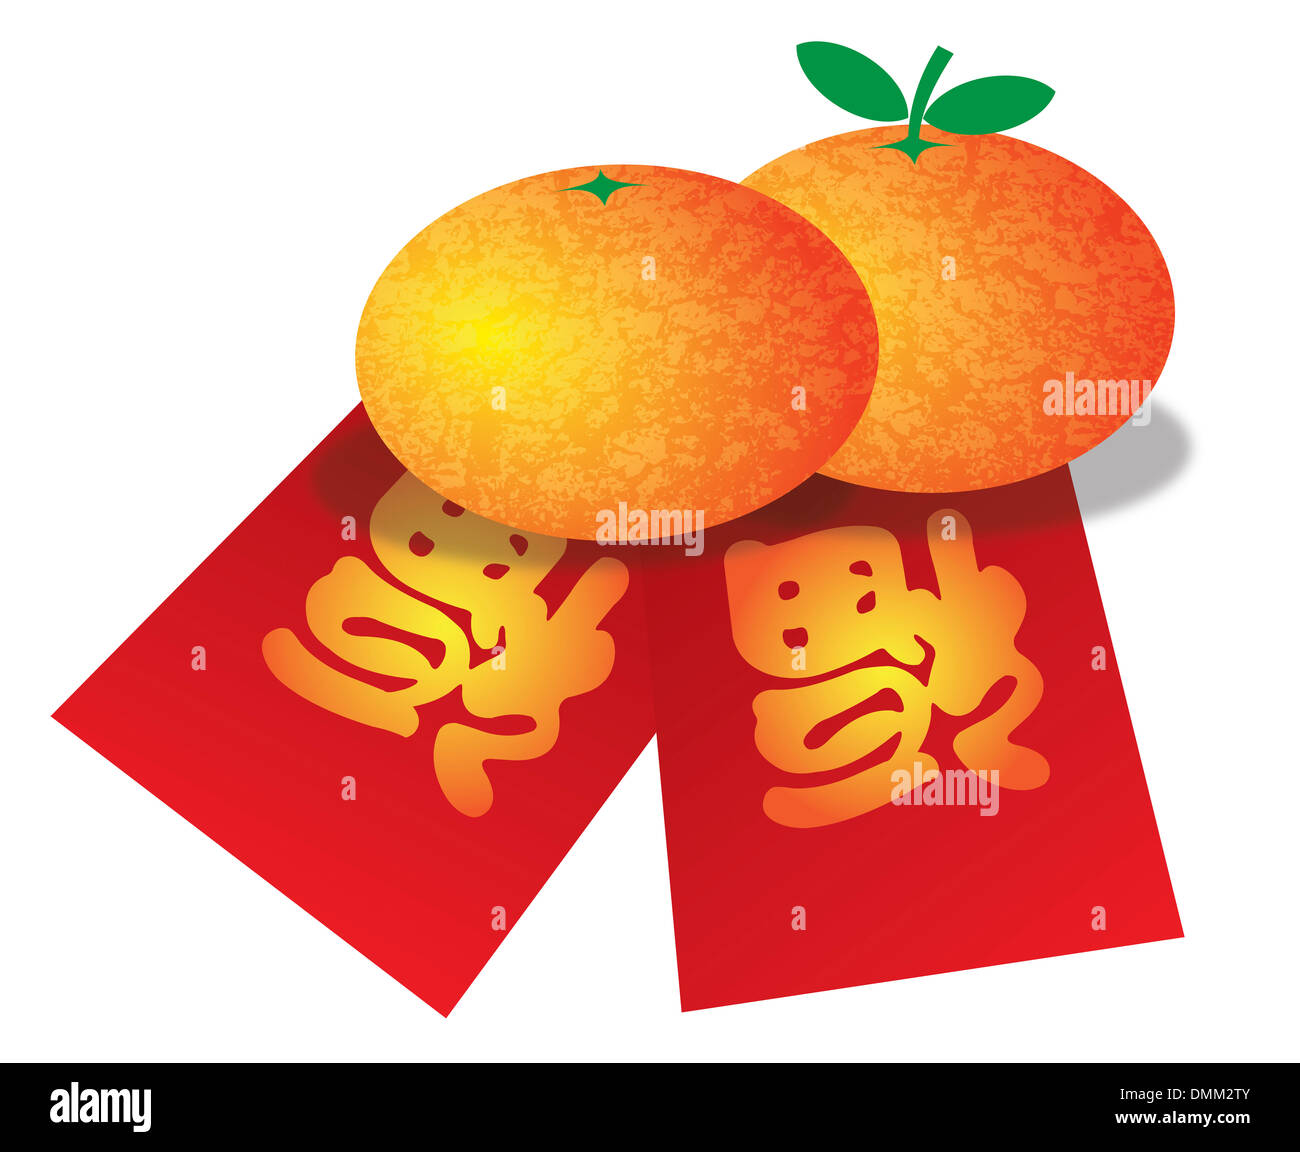 Chinese Calligraphy Mandarin Stockfotos & Chinese Calligraphy ...